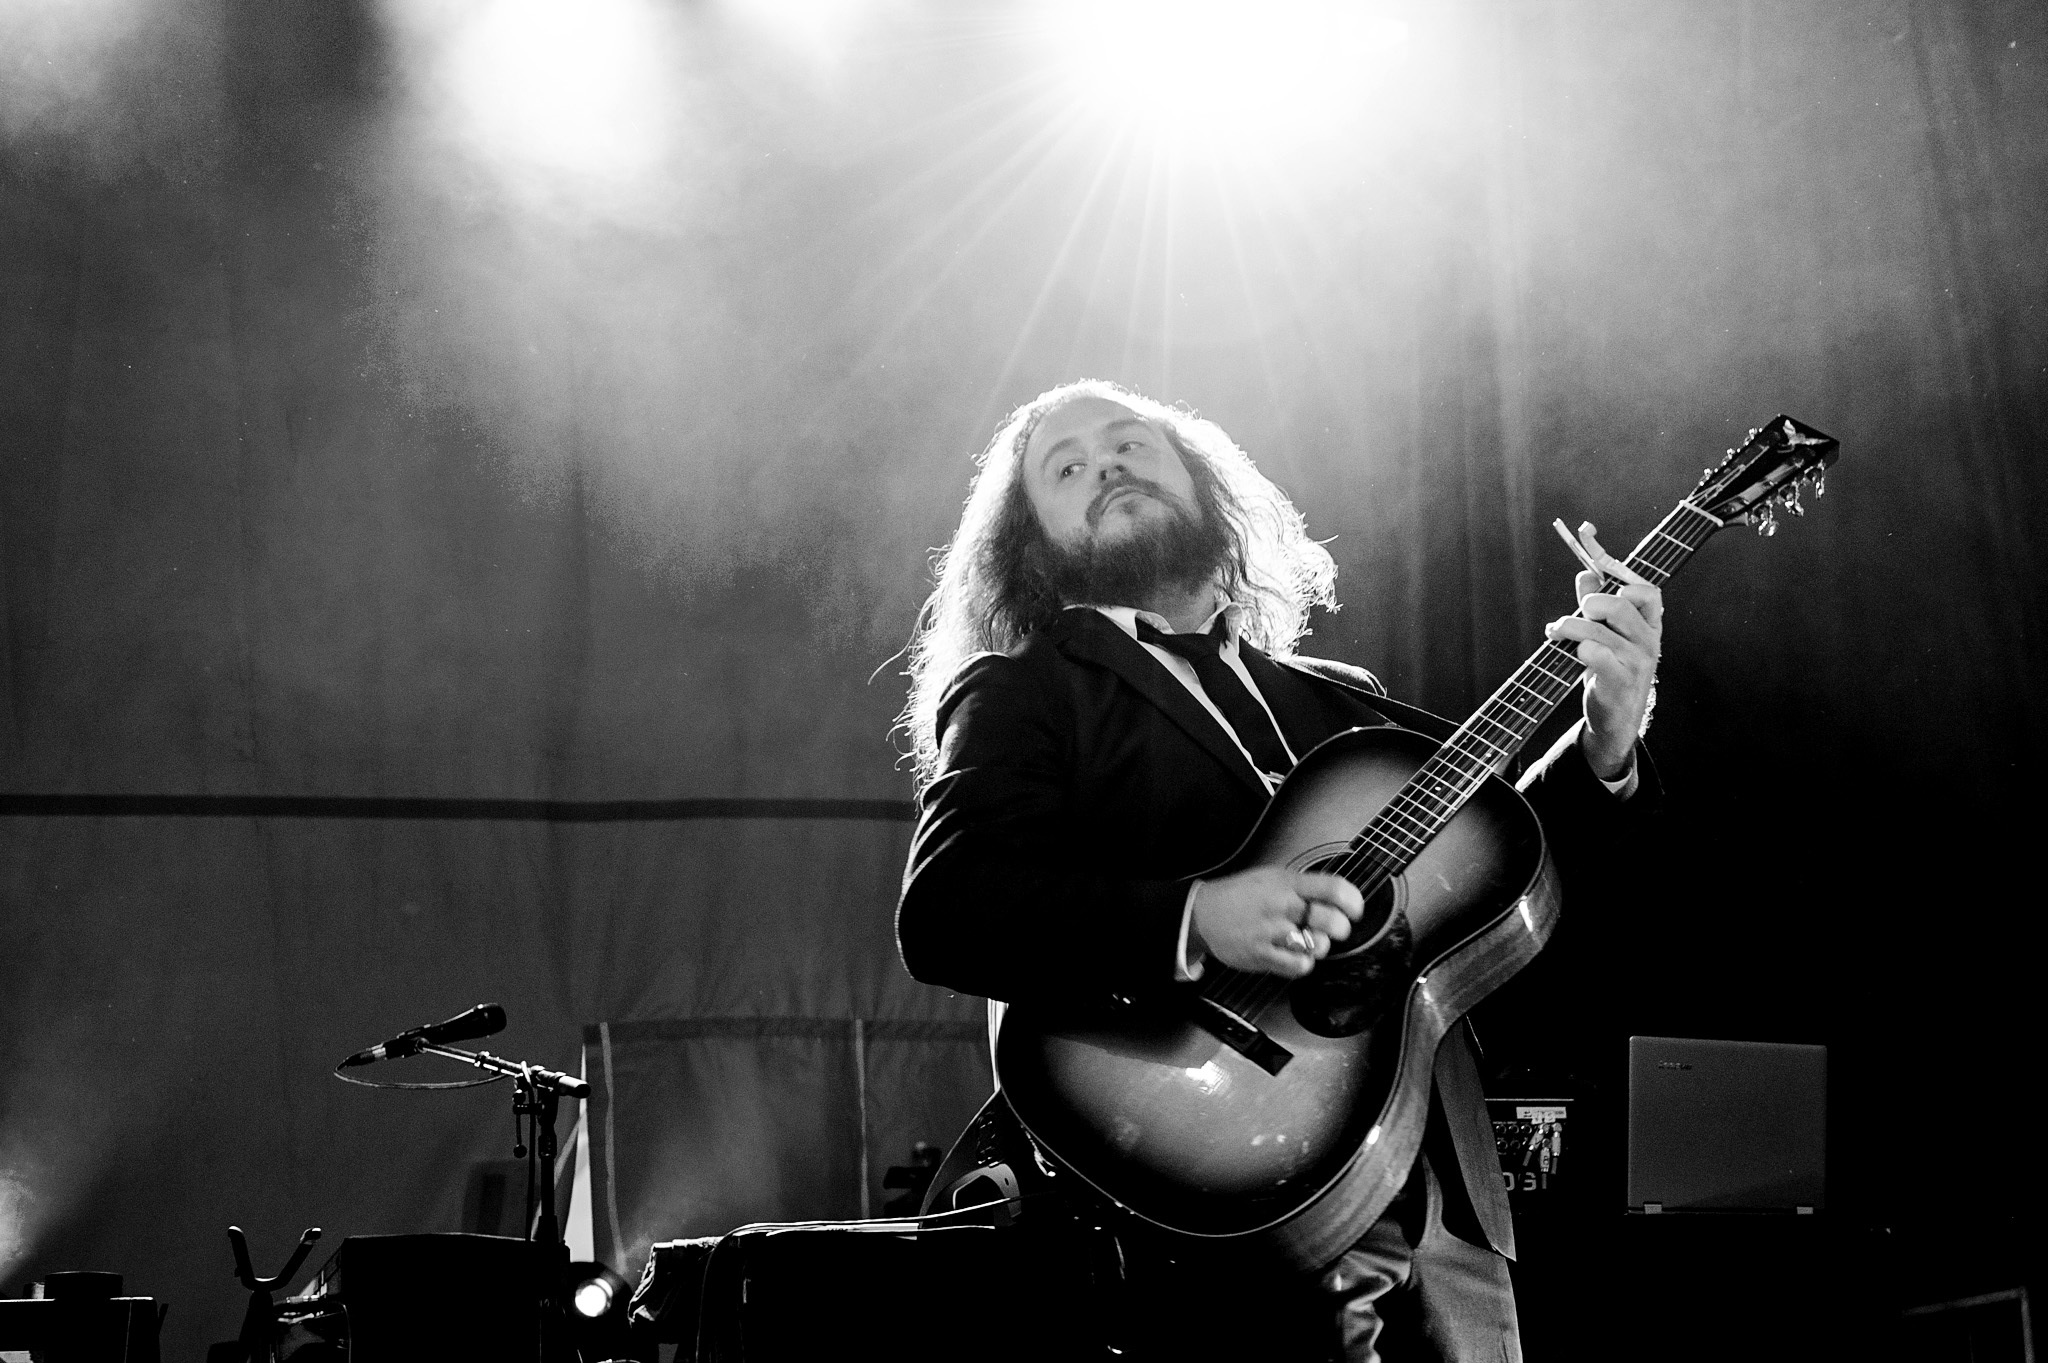 CBGB Festival: Live photos of My Morning Jacket, Grizzly Bear and more